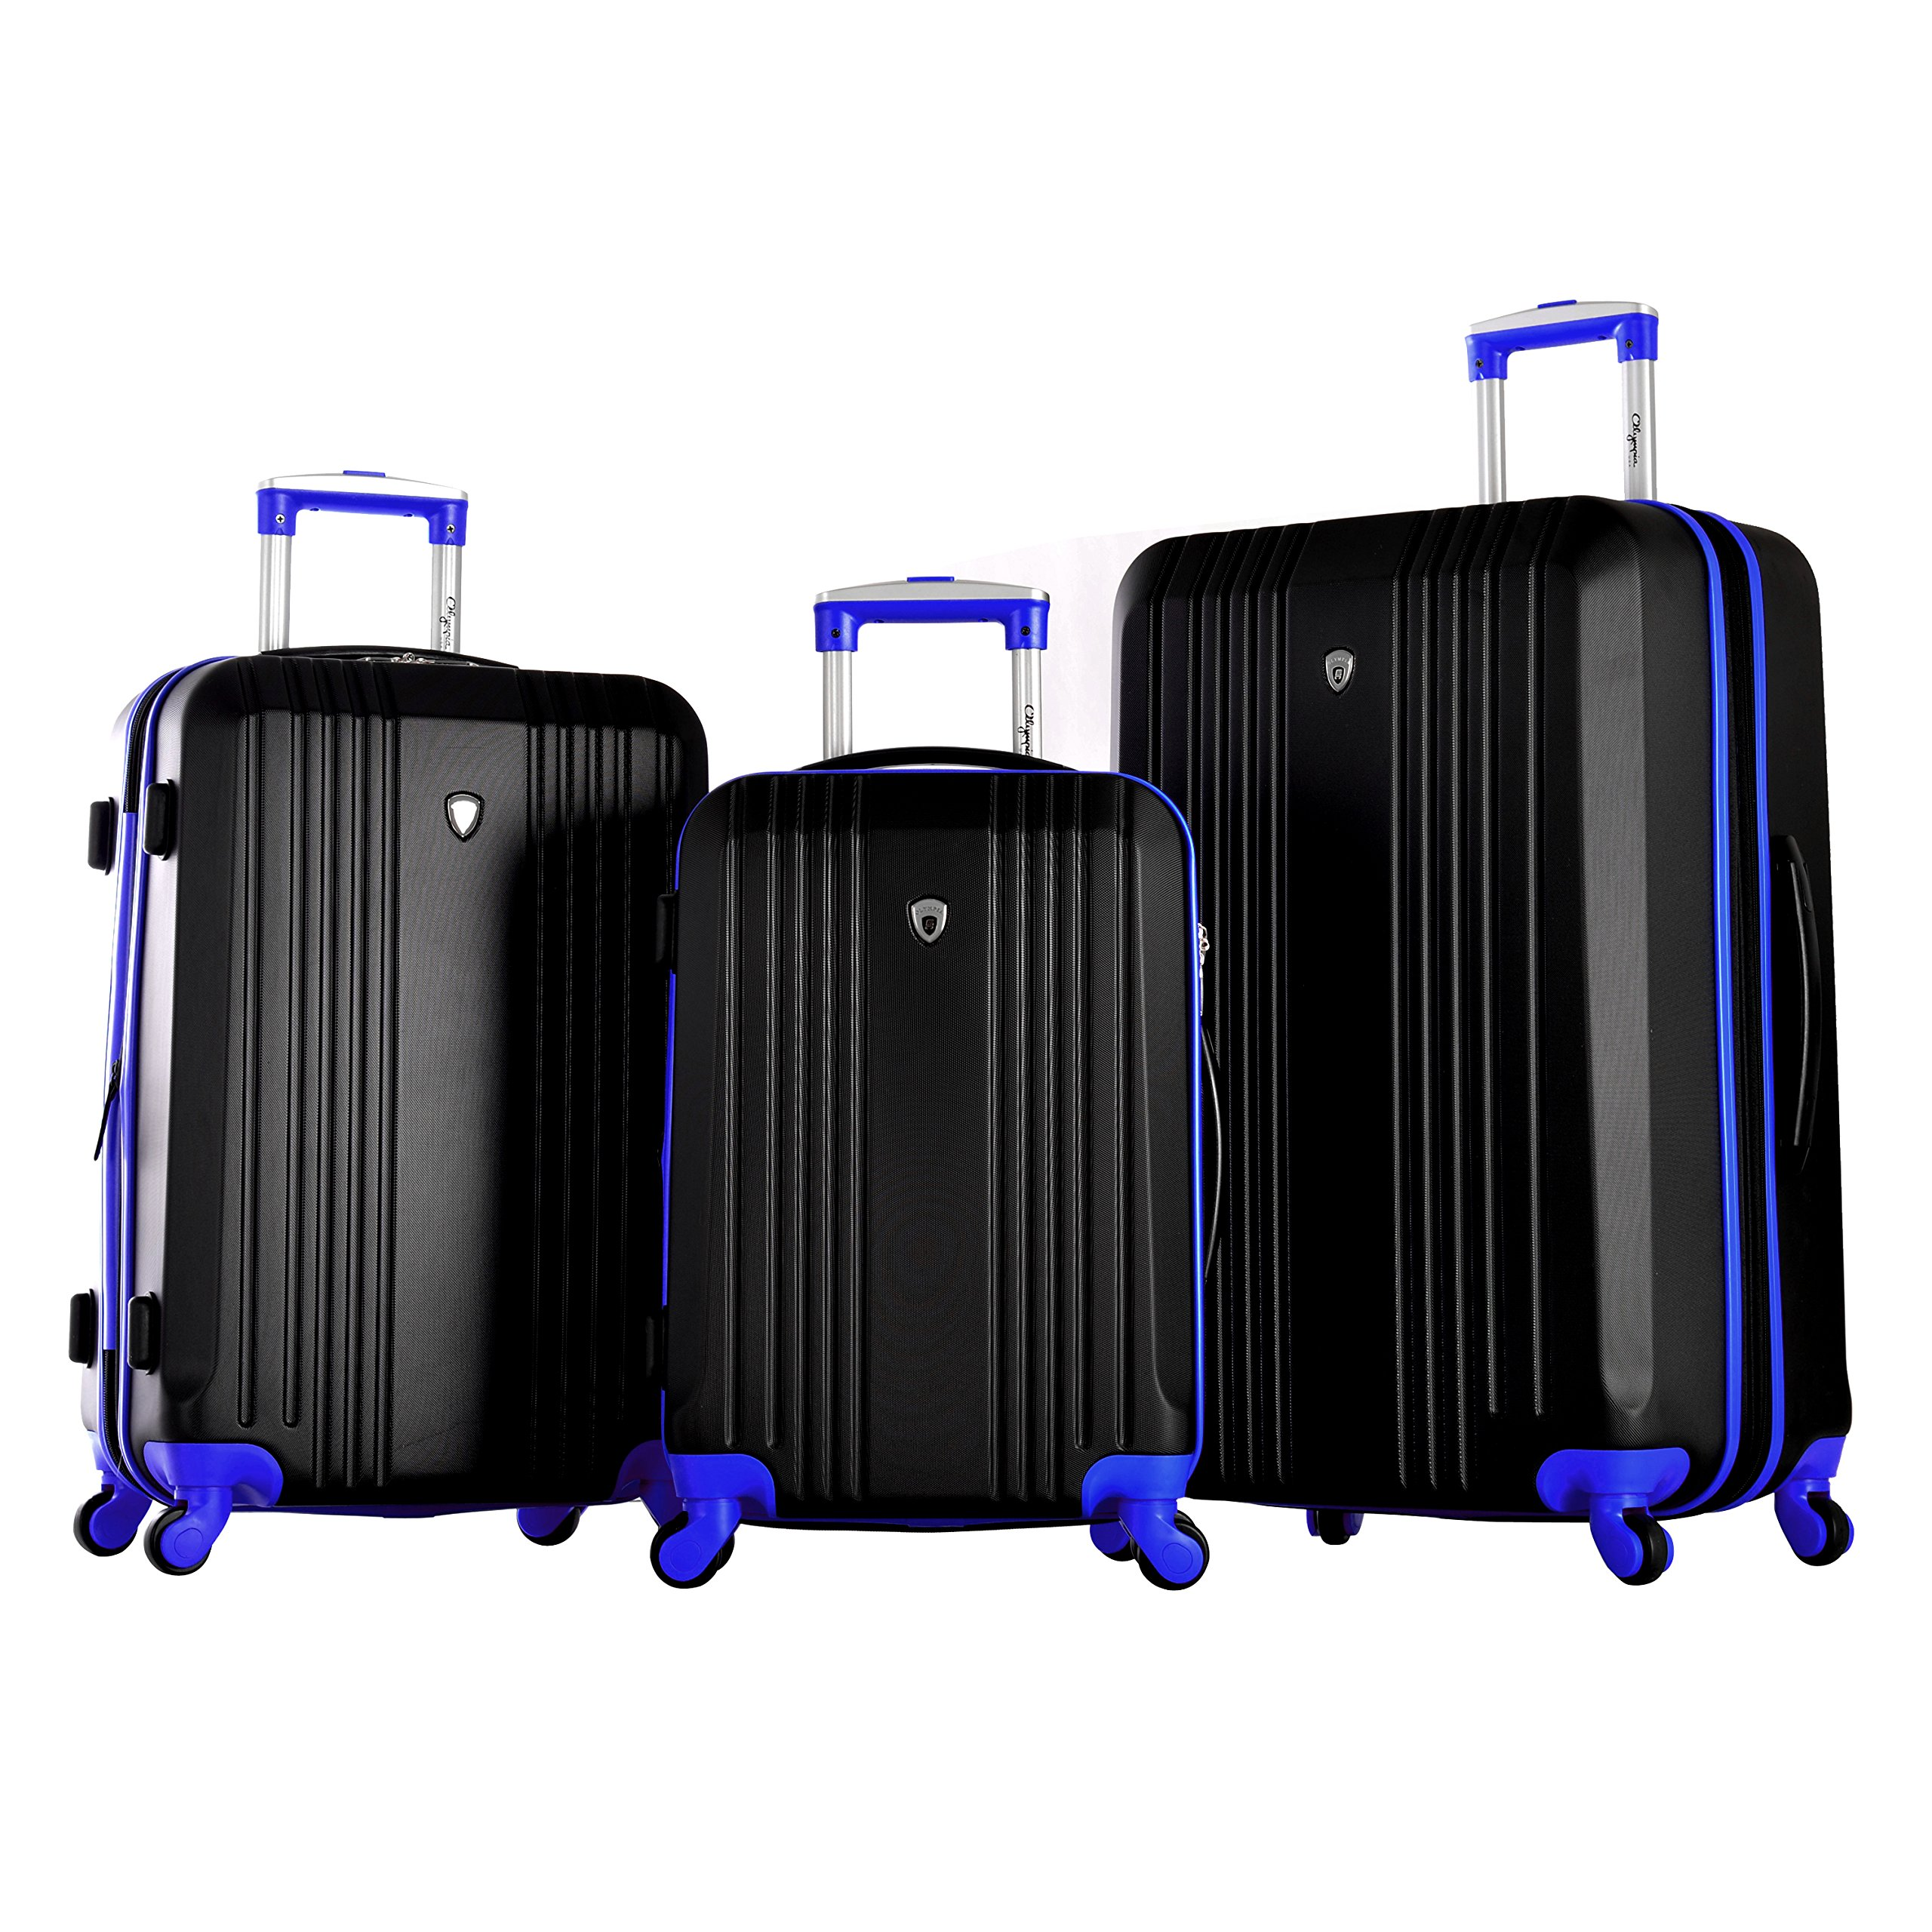 Olympia Apache 3pc Hardcase Spinner Luggage Set, Black/Blue